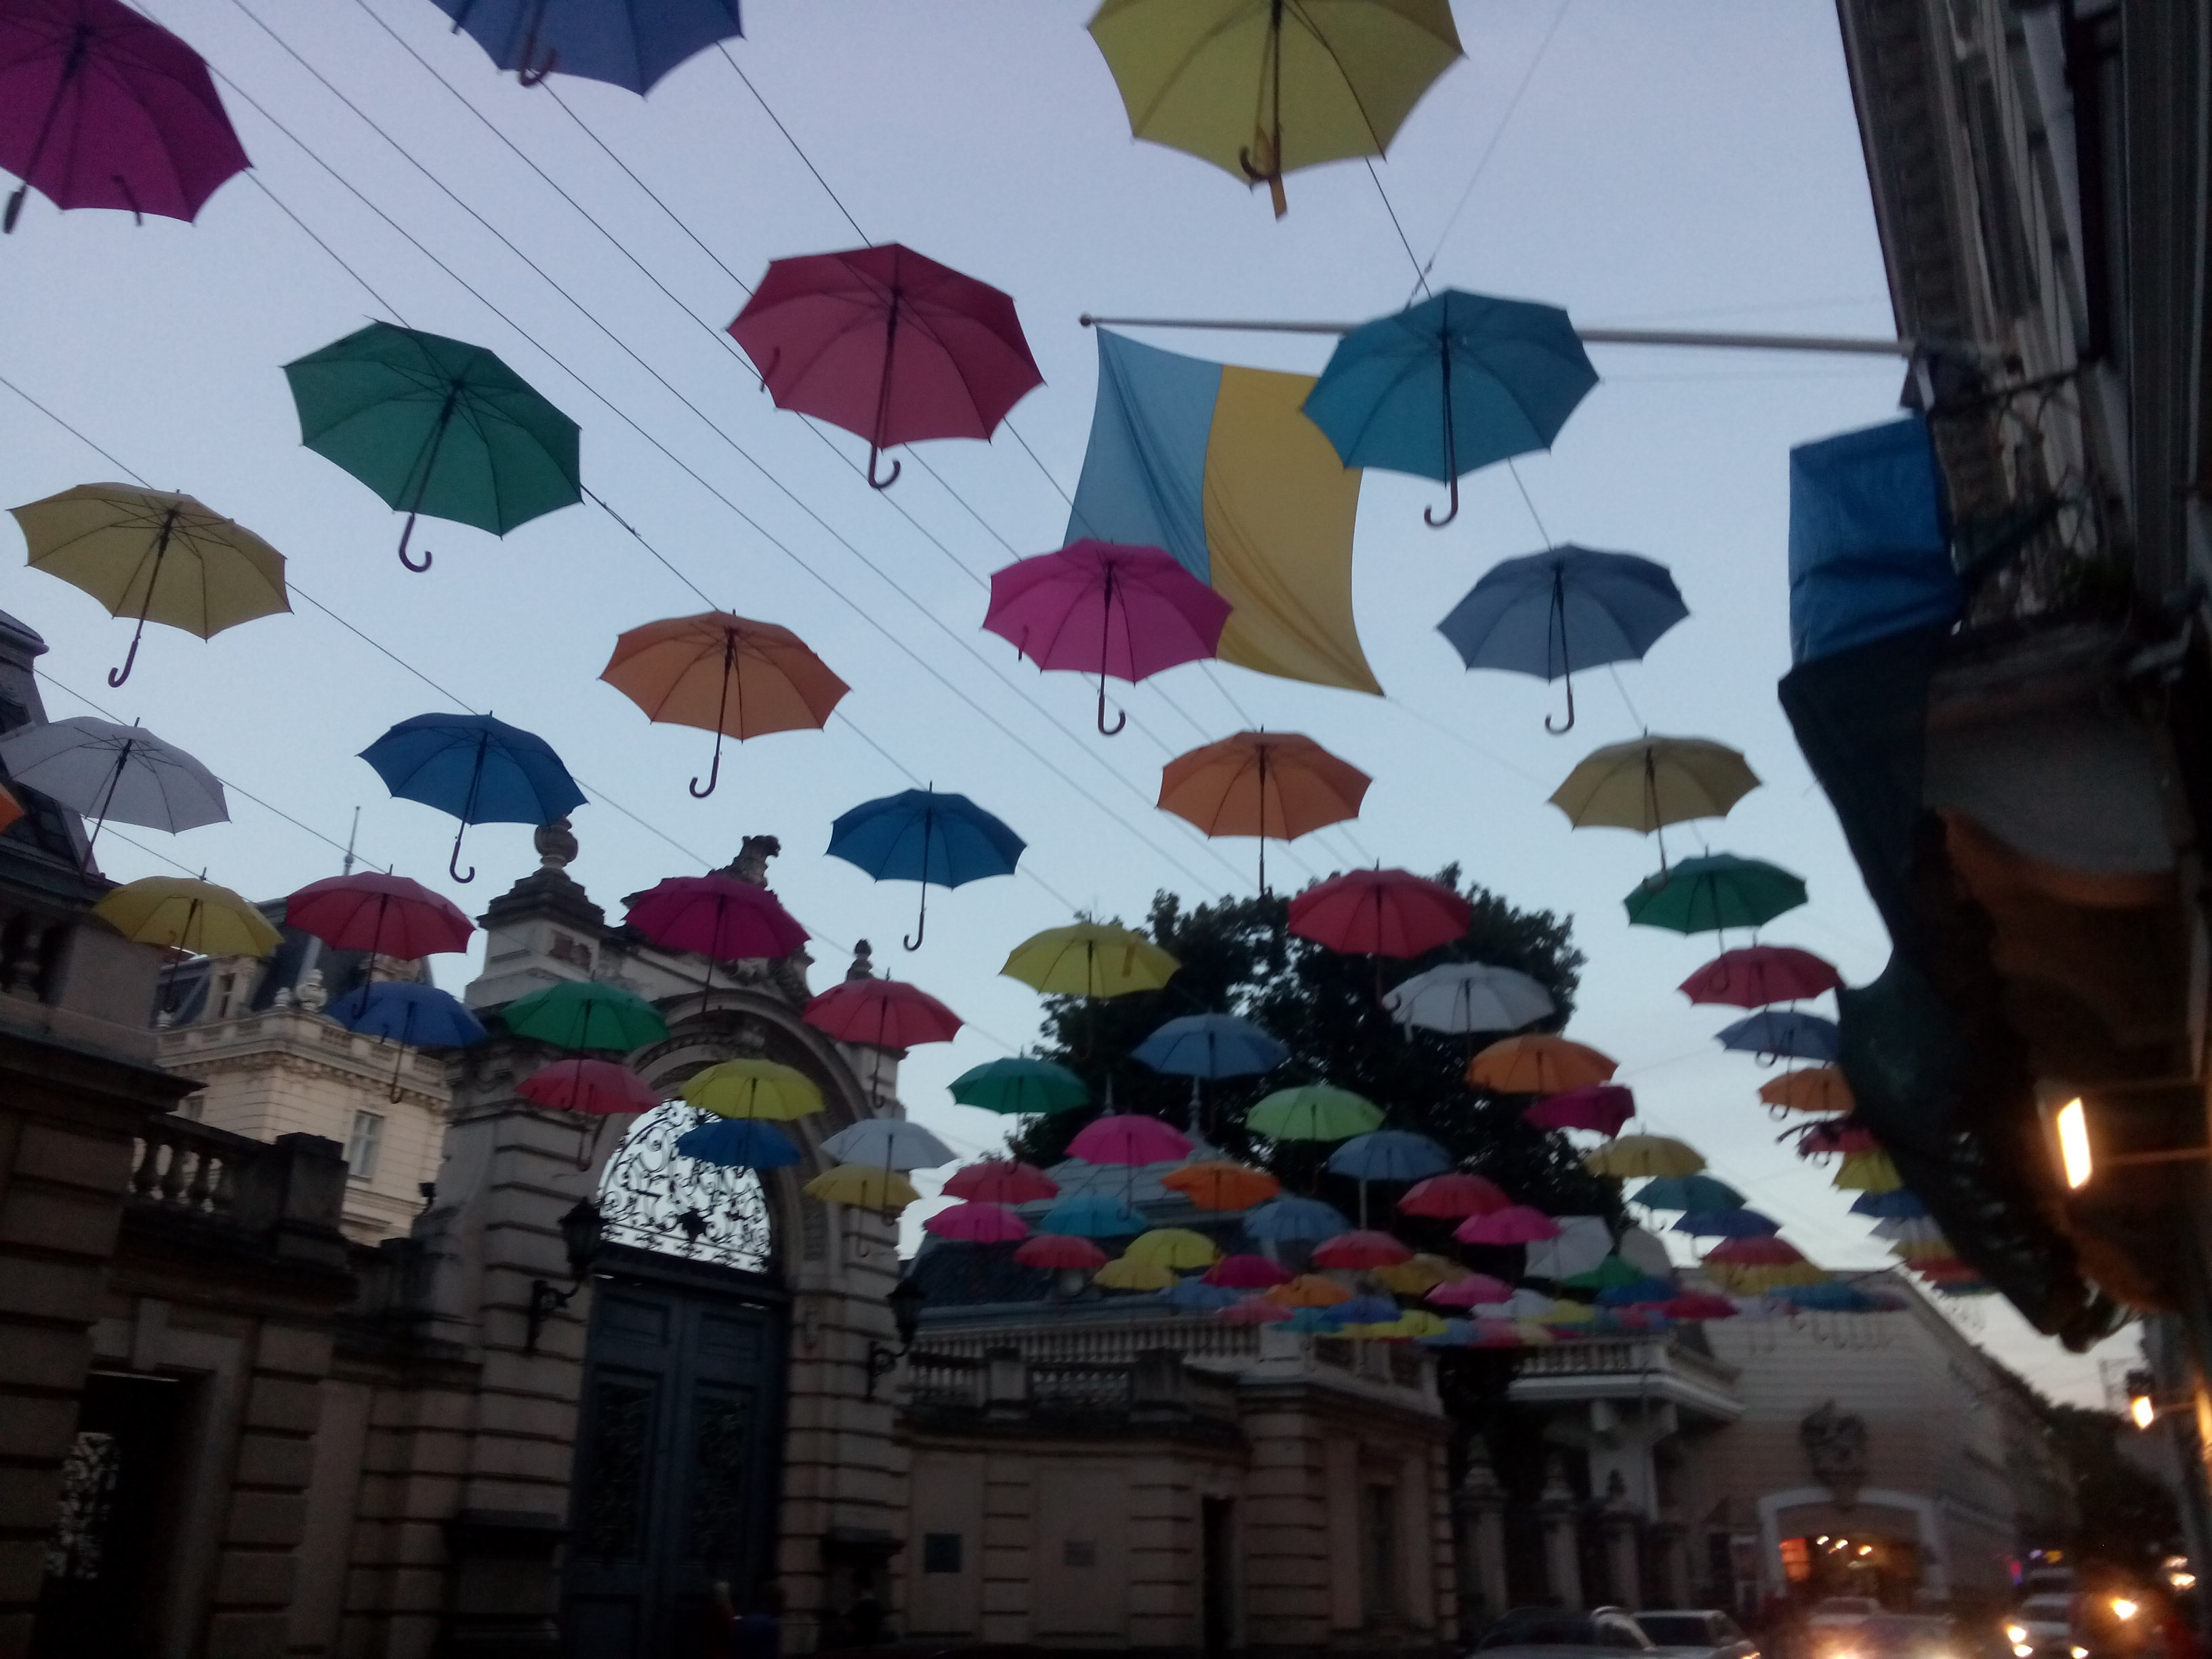 Dozens of bright coloured umbrellas strung up over a street